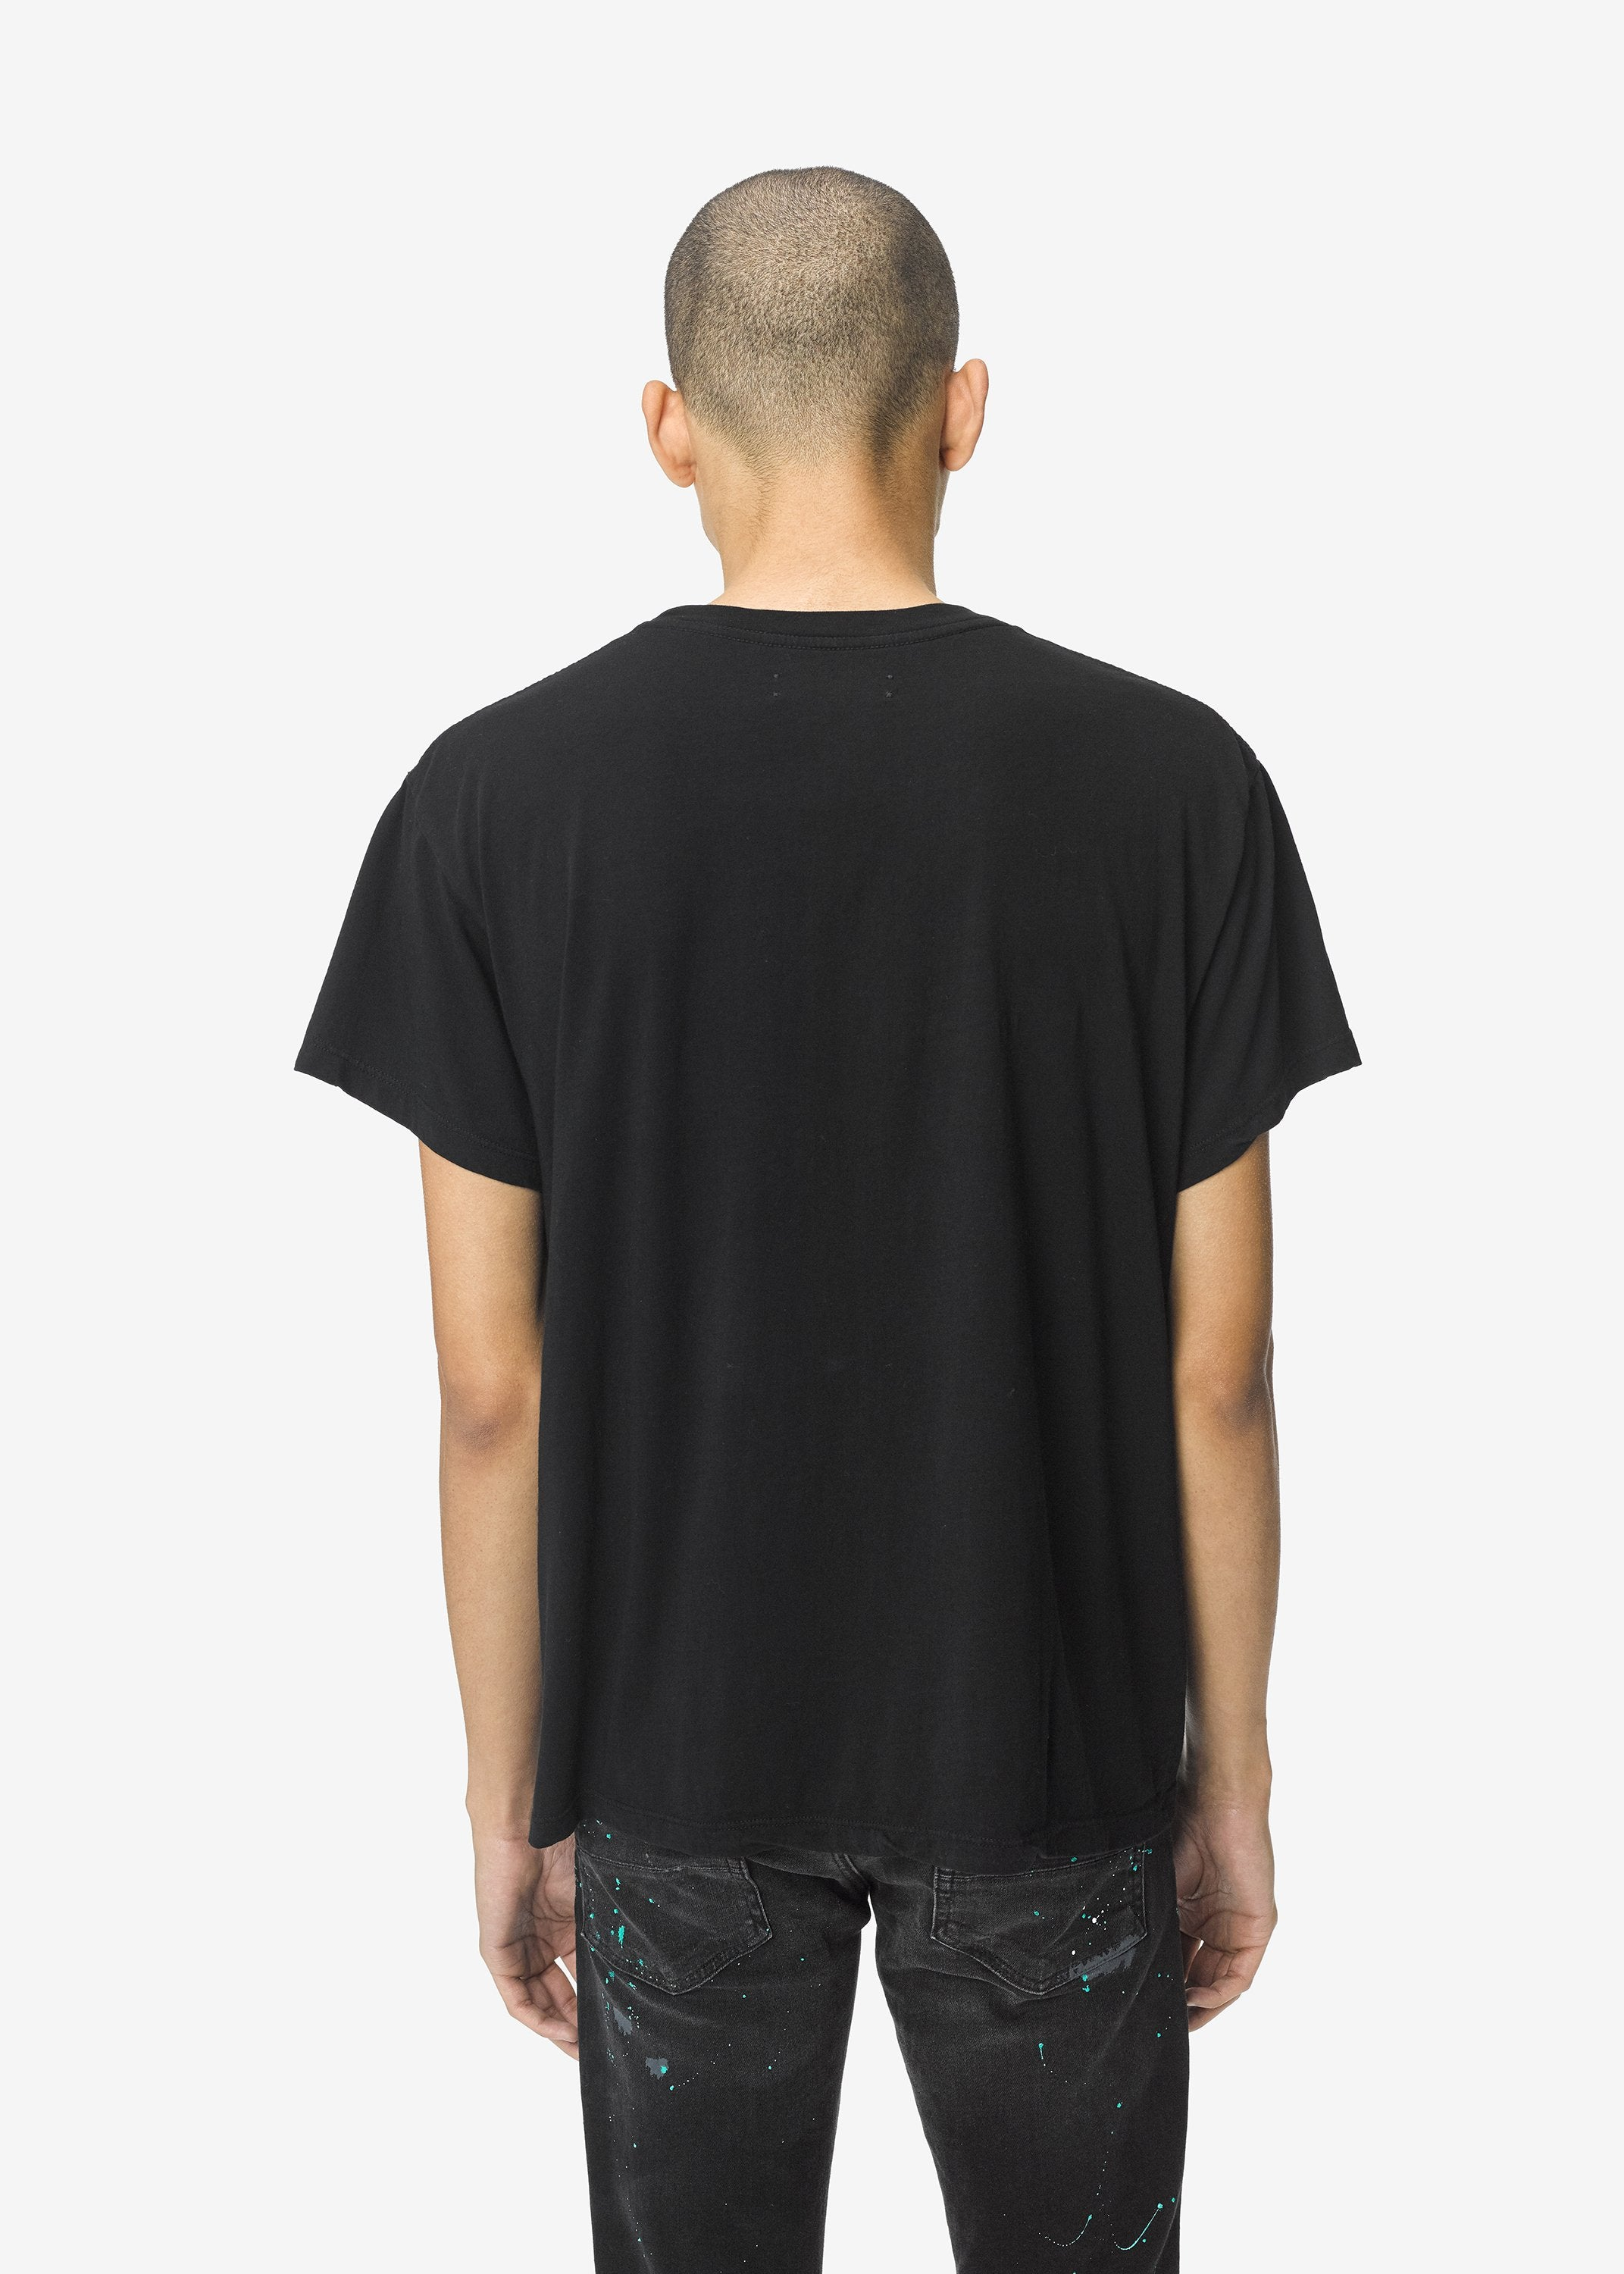 hold-your-hand-tee-black-image-4